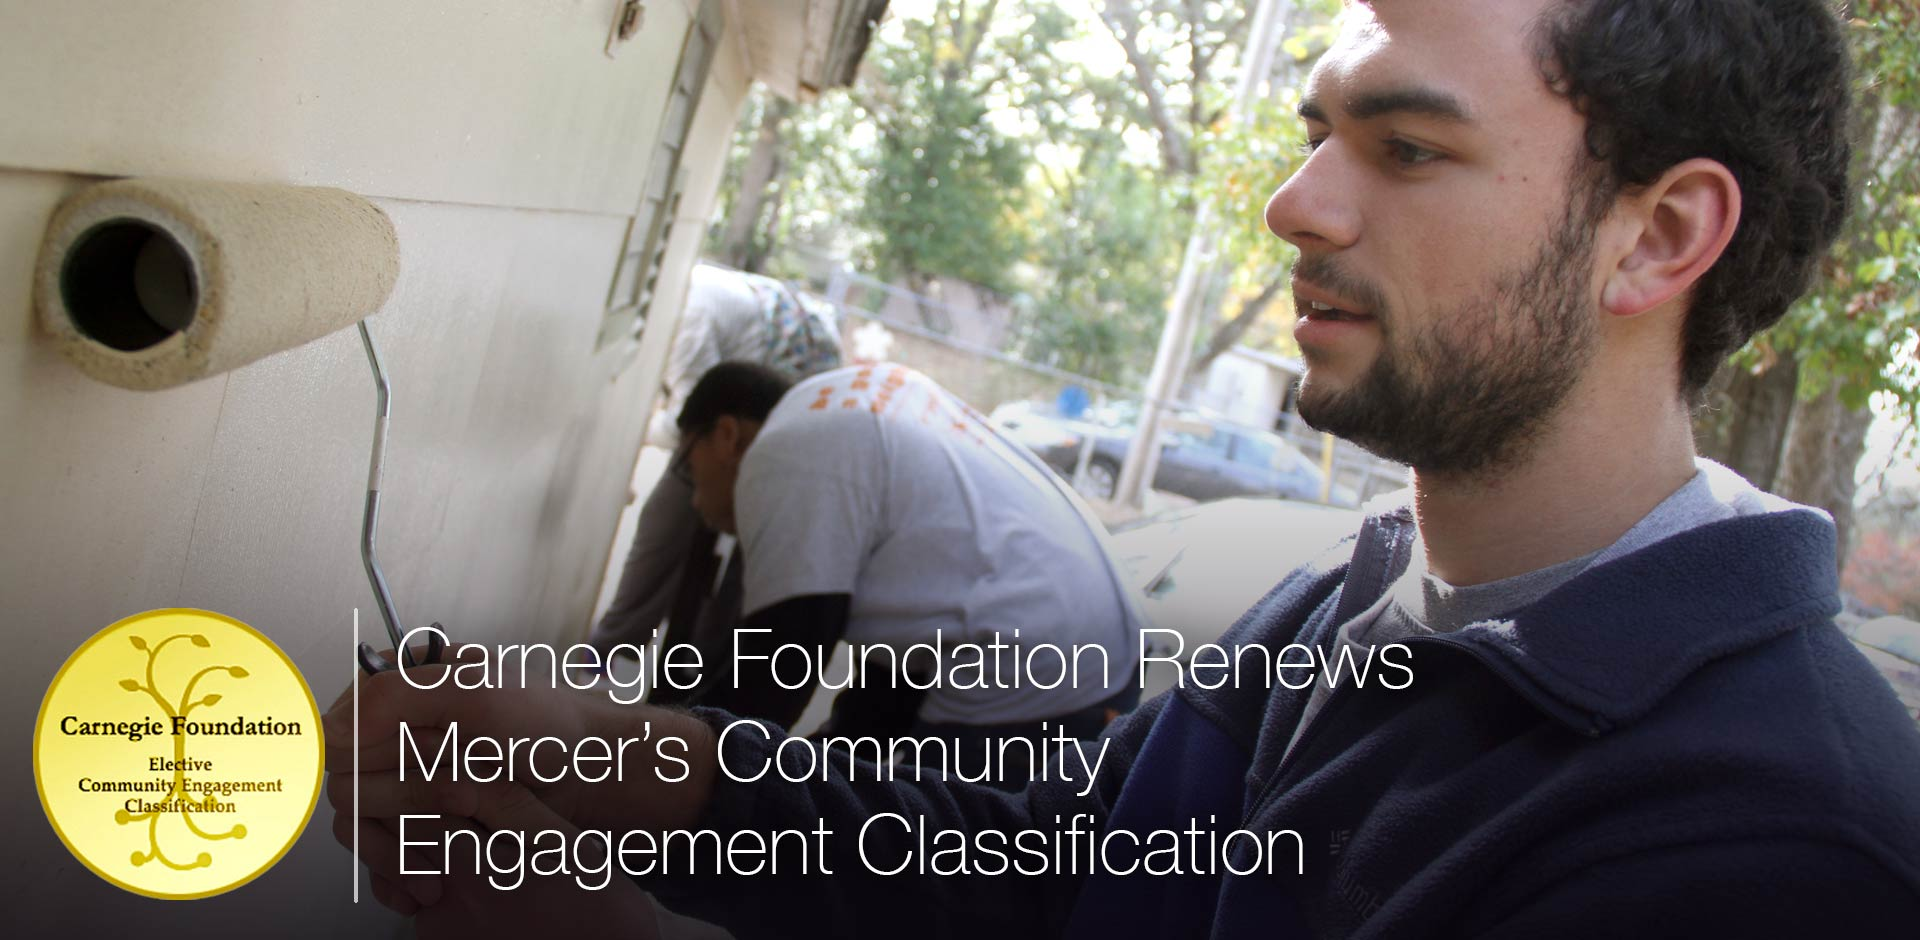 Carnegie Foundation Renews Mercer's Community Engagement Classification